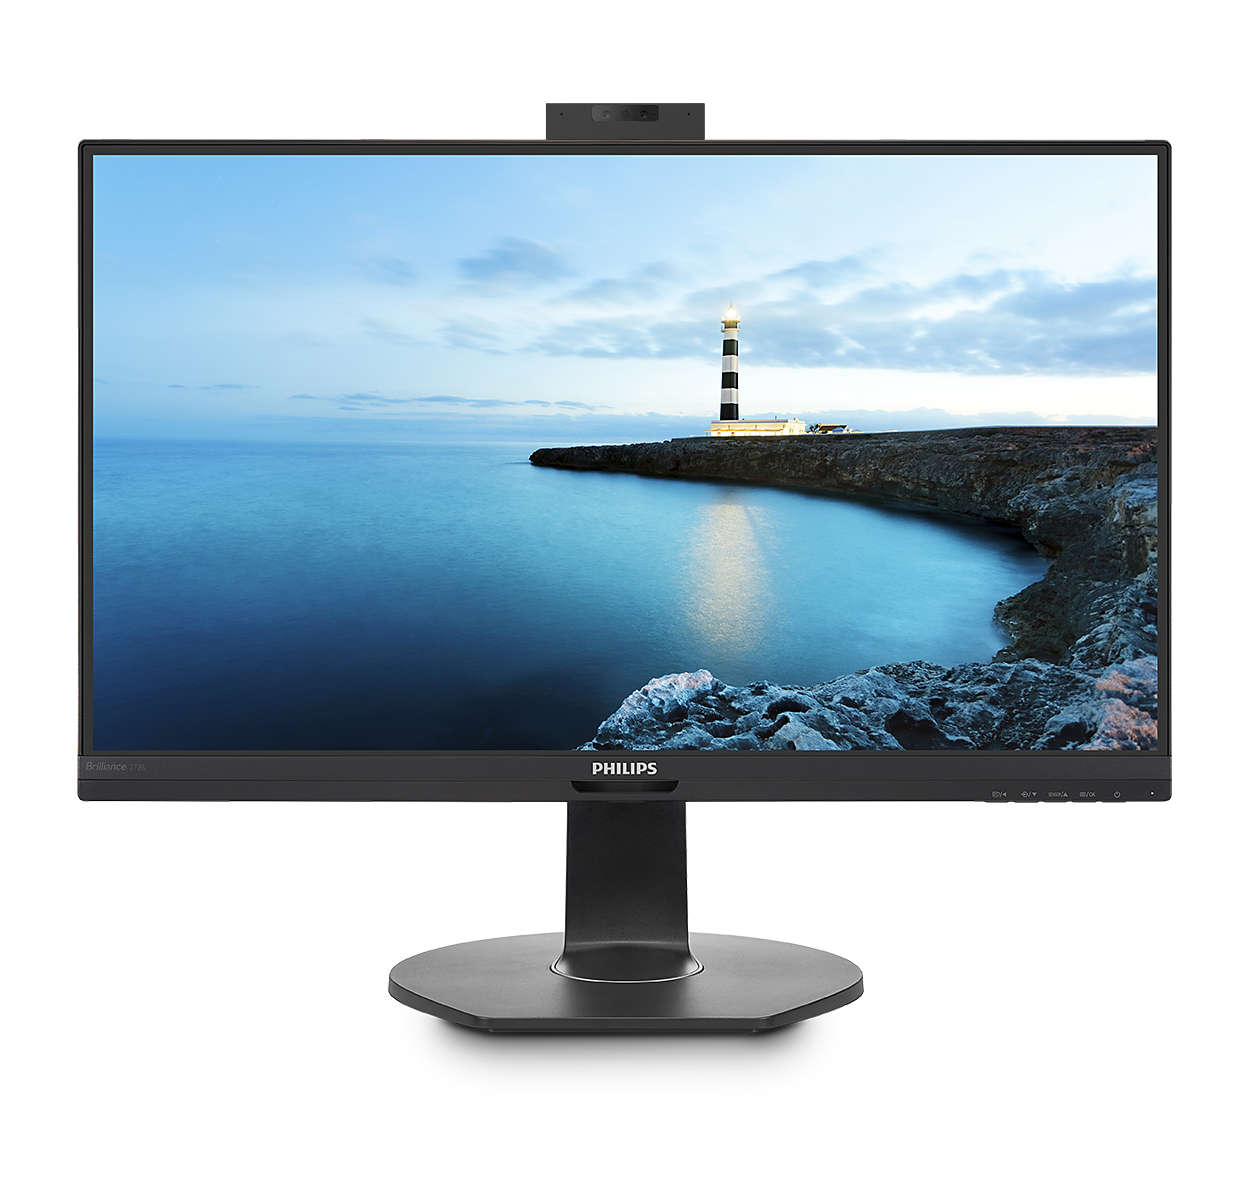 Philips LCD 272B7QUBHEB 16:9 IPS/2560 x 1440 @ 75Hz/50M:1/5ms/350 cd/m2/HDMI/2xDP/USB-C dock/webcam/Repro/Pivot